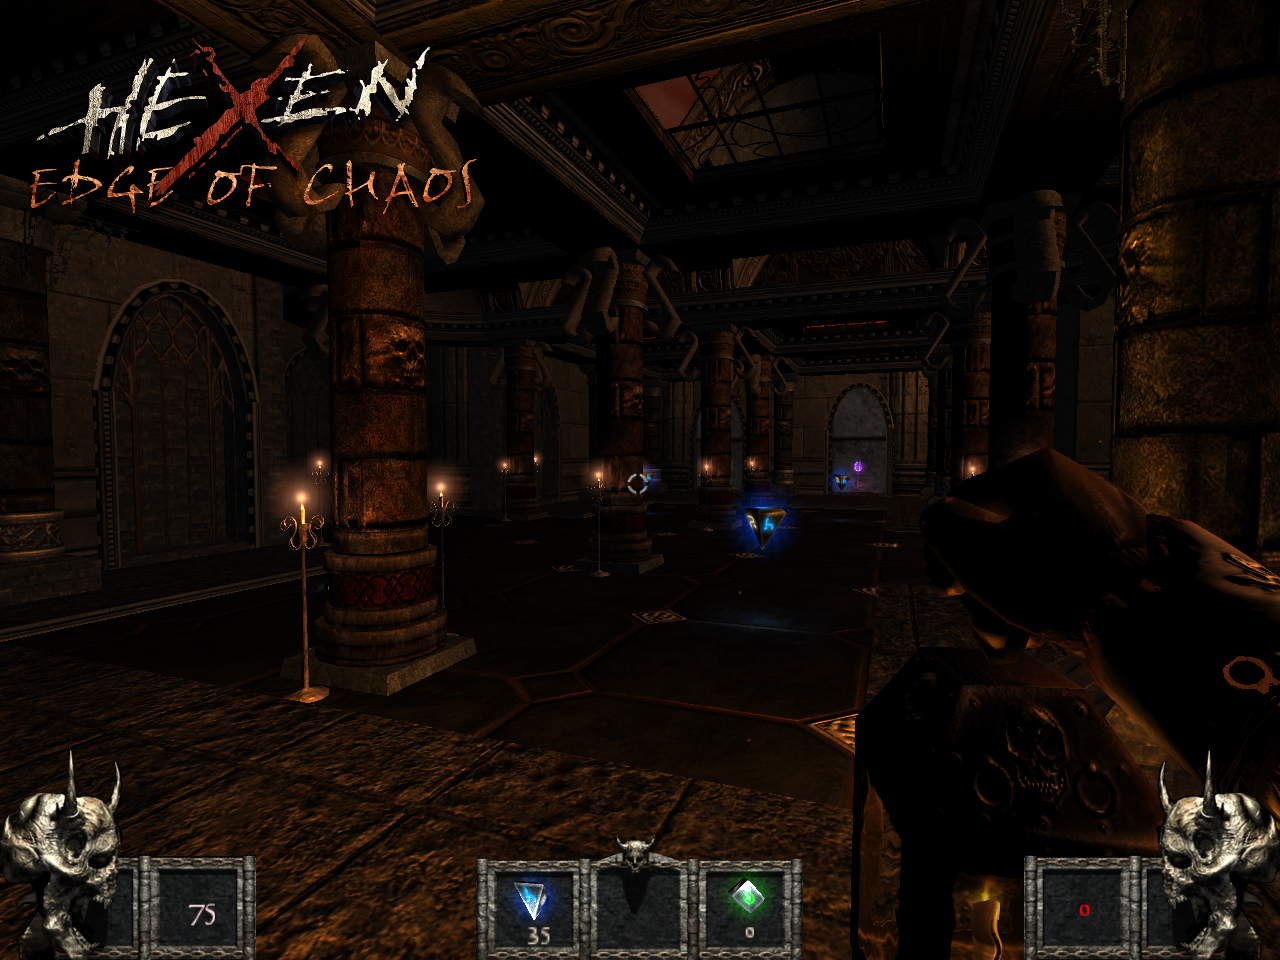 the edge of chaos Released as edge of chaos: independence war 2 in europe and galaxy commander: edge of chaos for the german re-release general information.